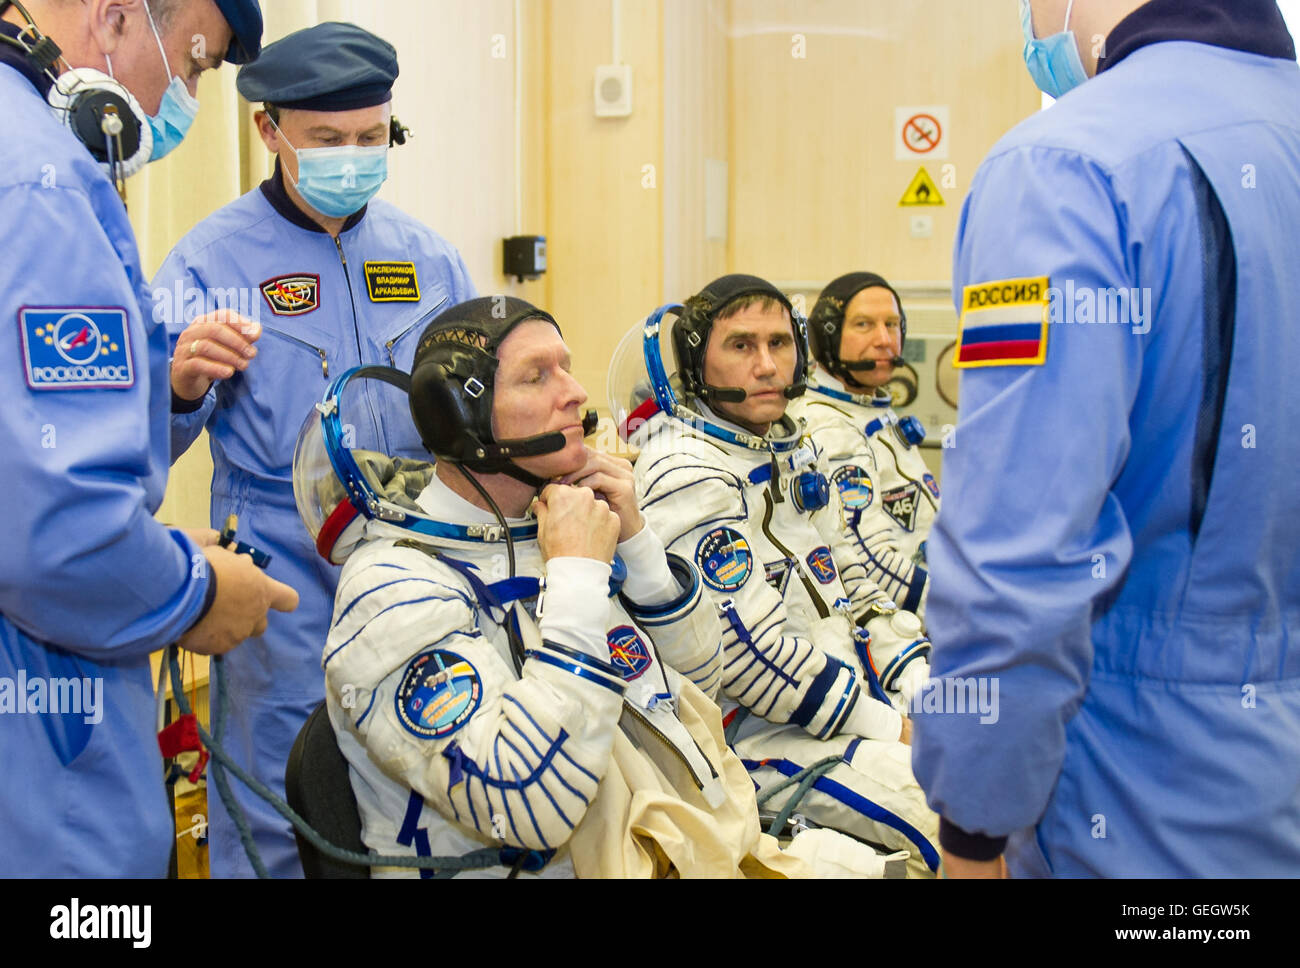 Expedition 46 Preflight  12150057 - Stock Image